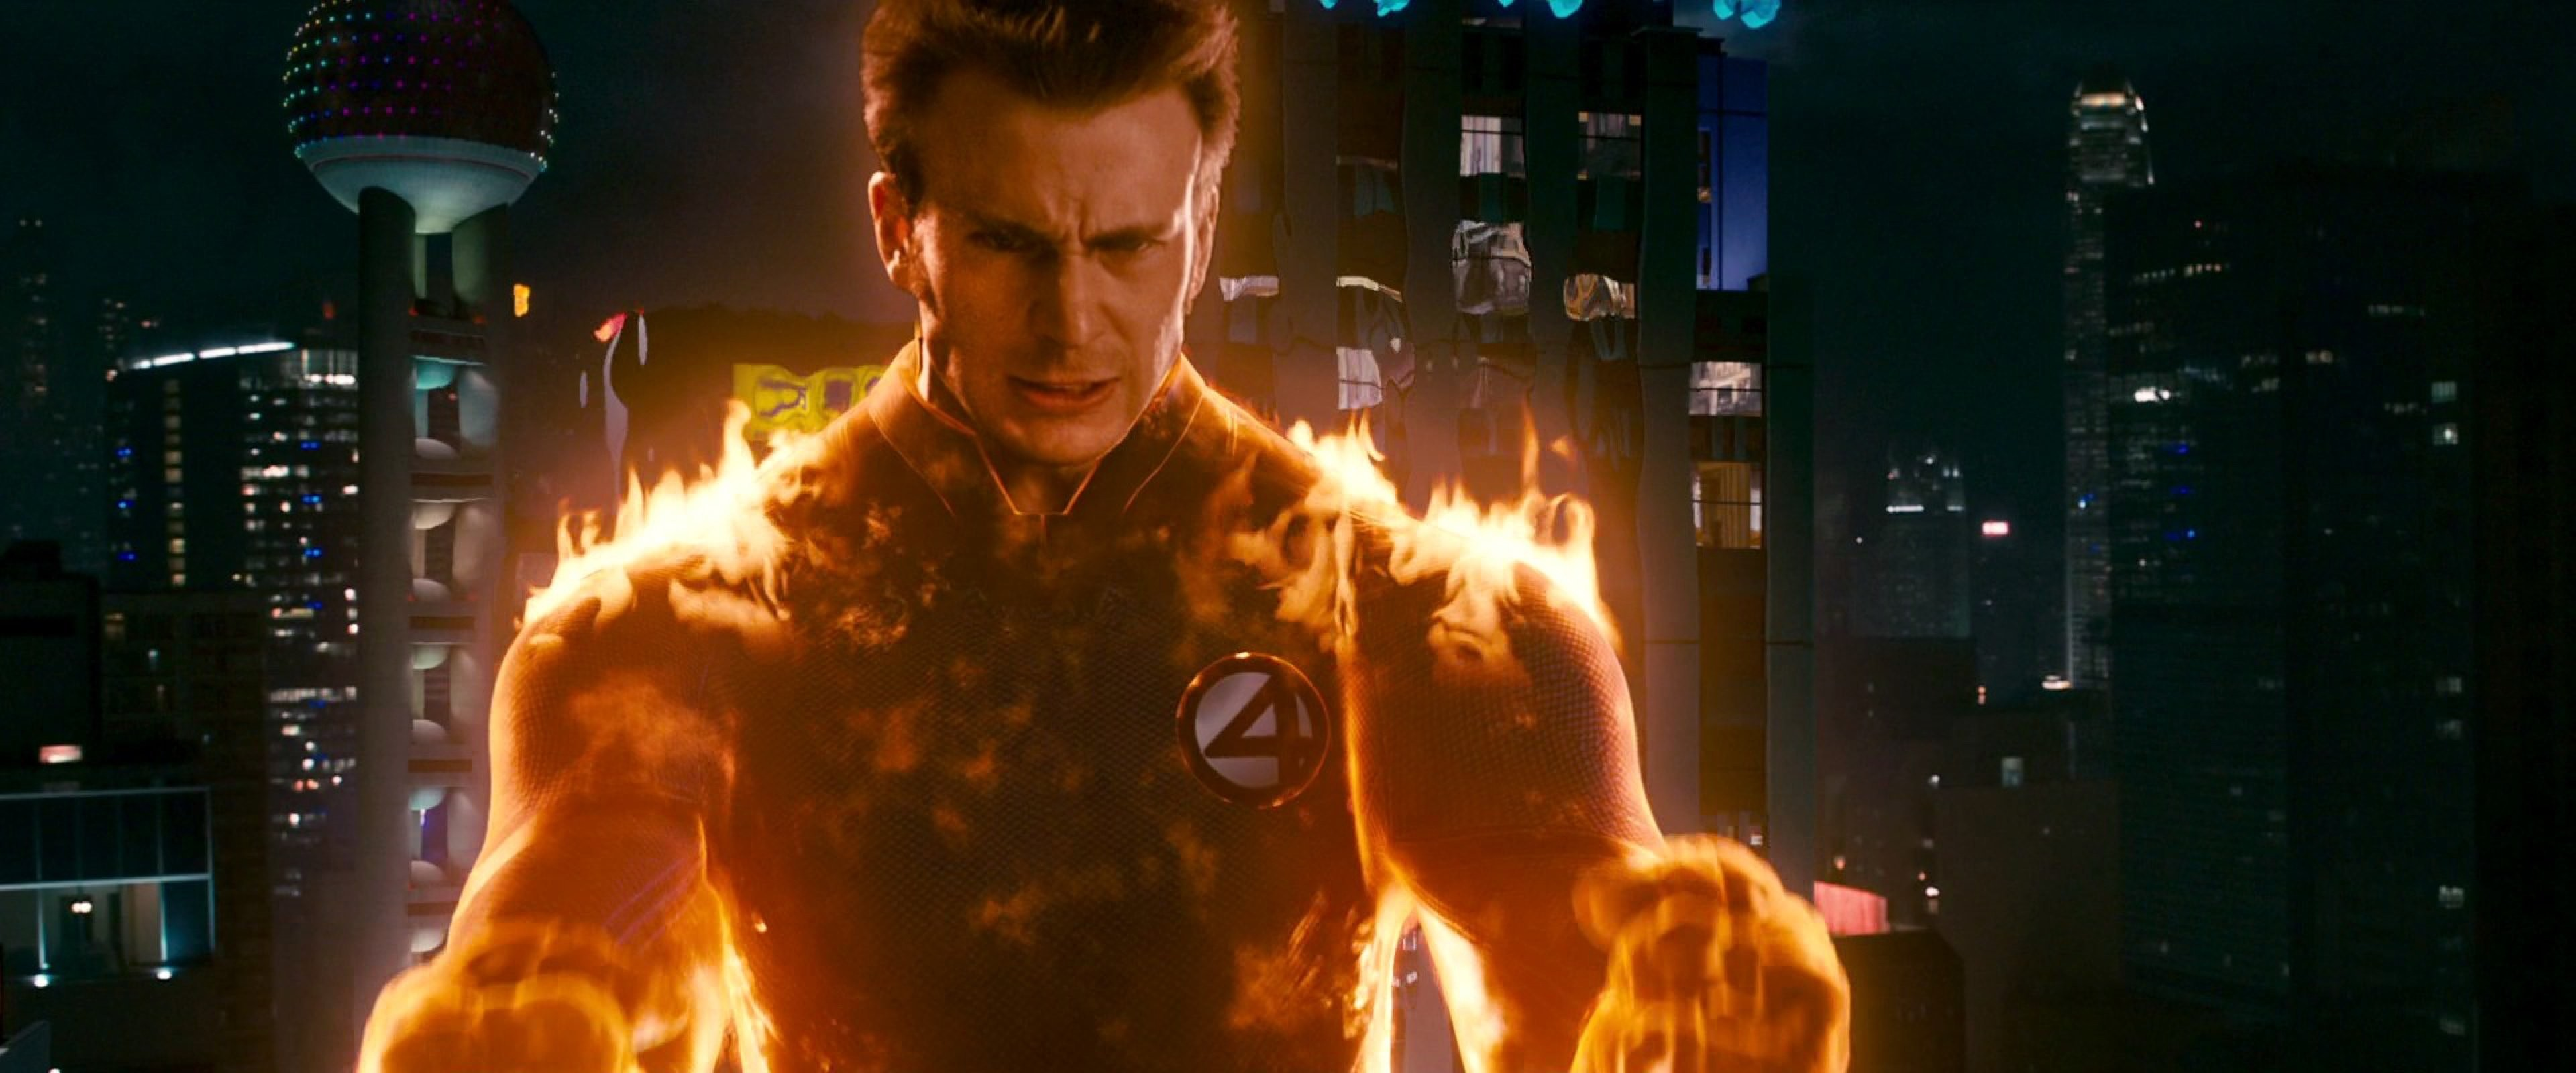 Human Torch Wallpaper (70+ images)